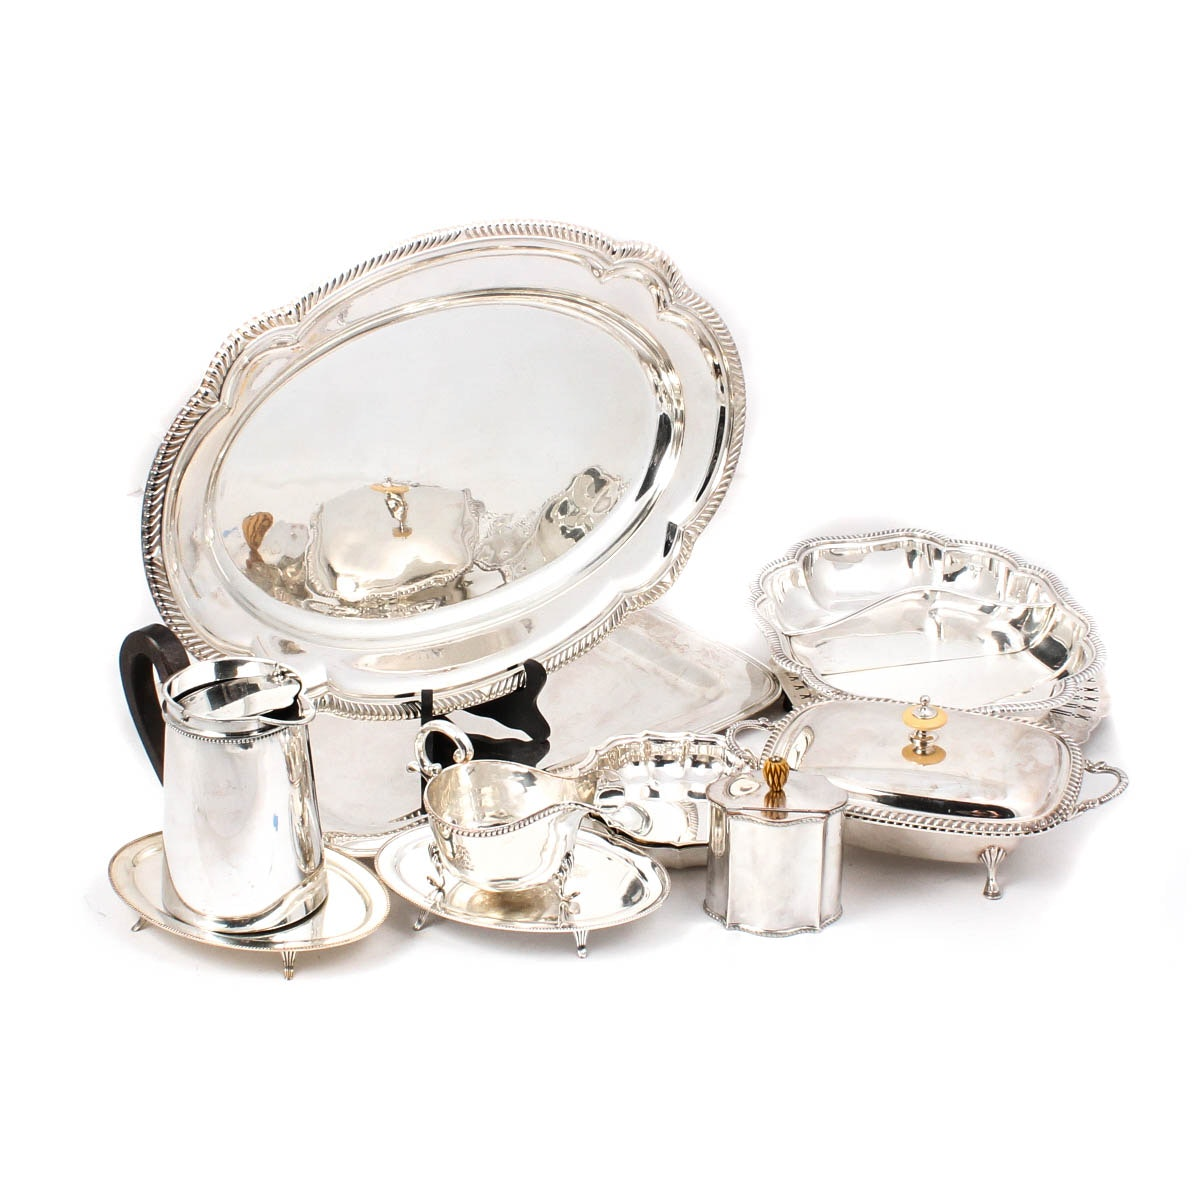 Collection of Silver Plate Serving Pieces